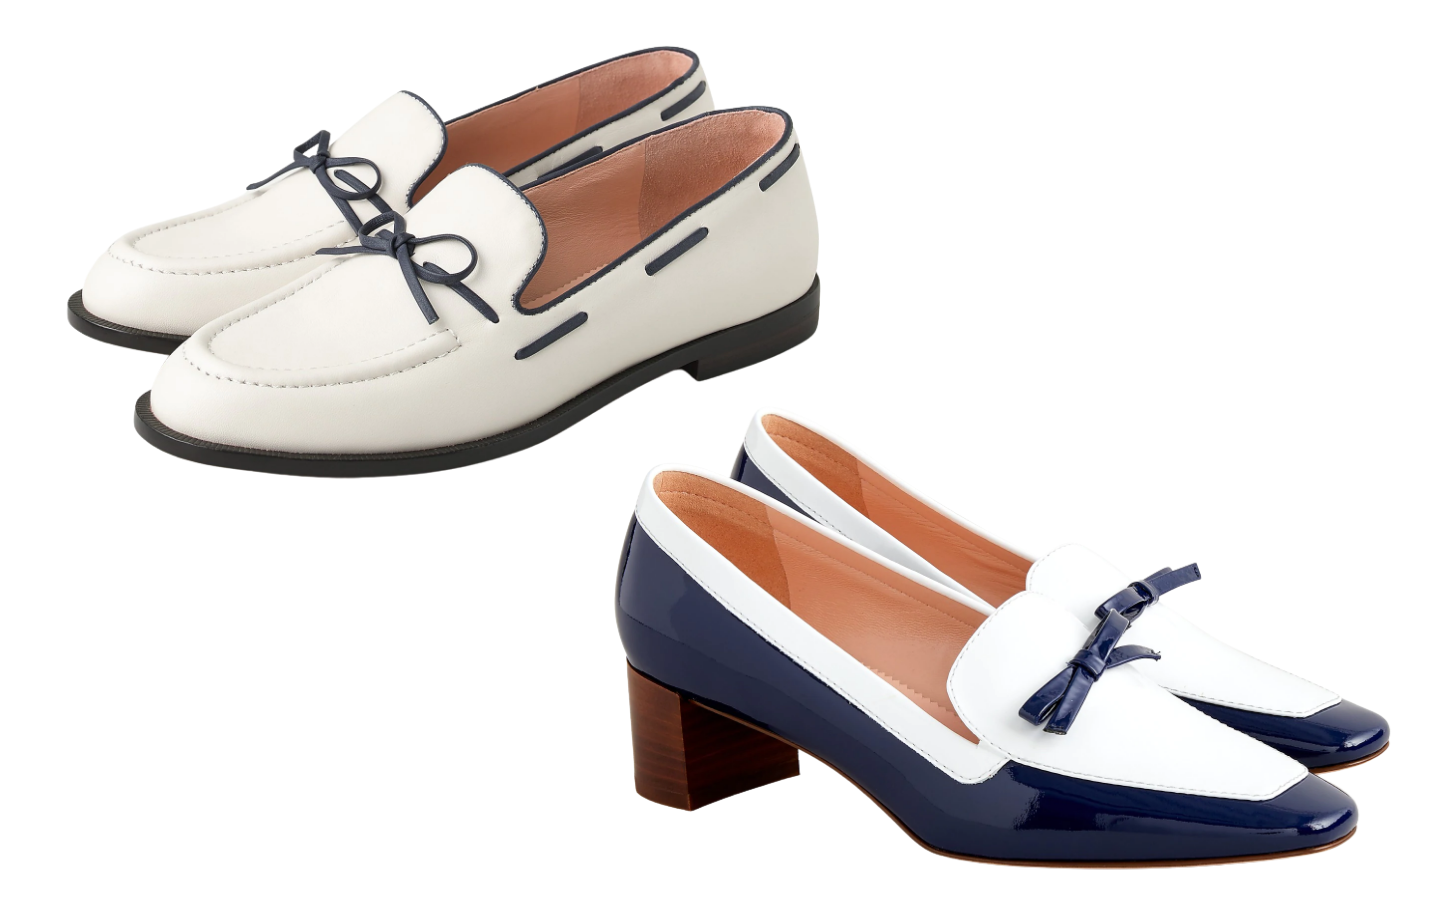 Menswear Inspired loafers